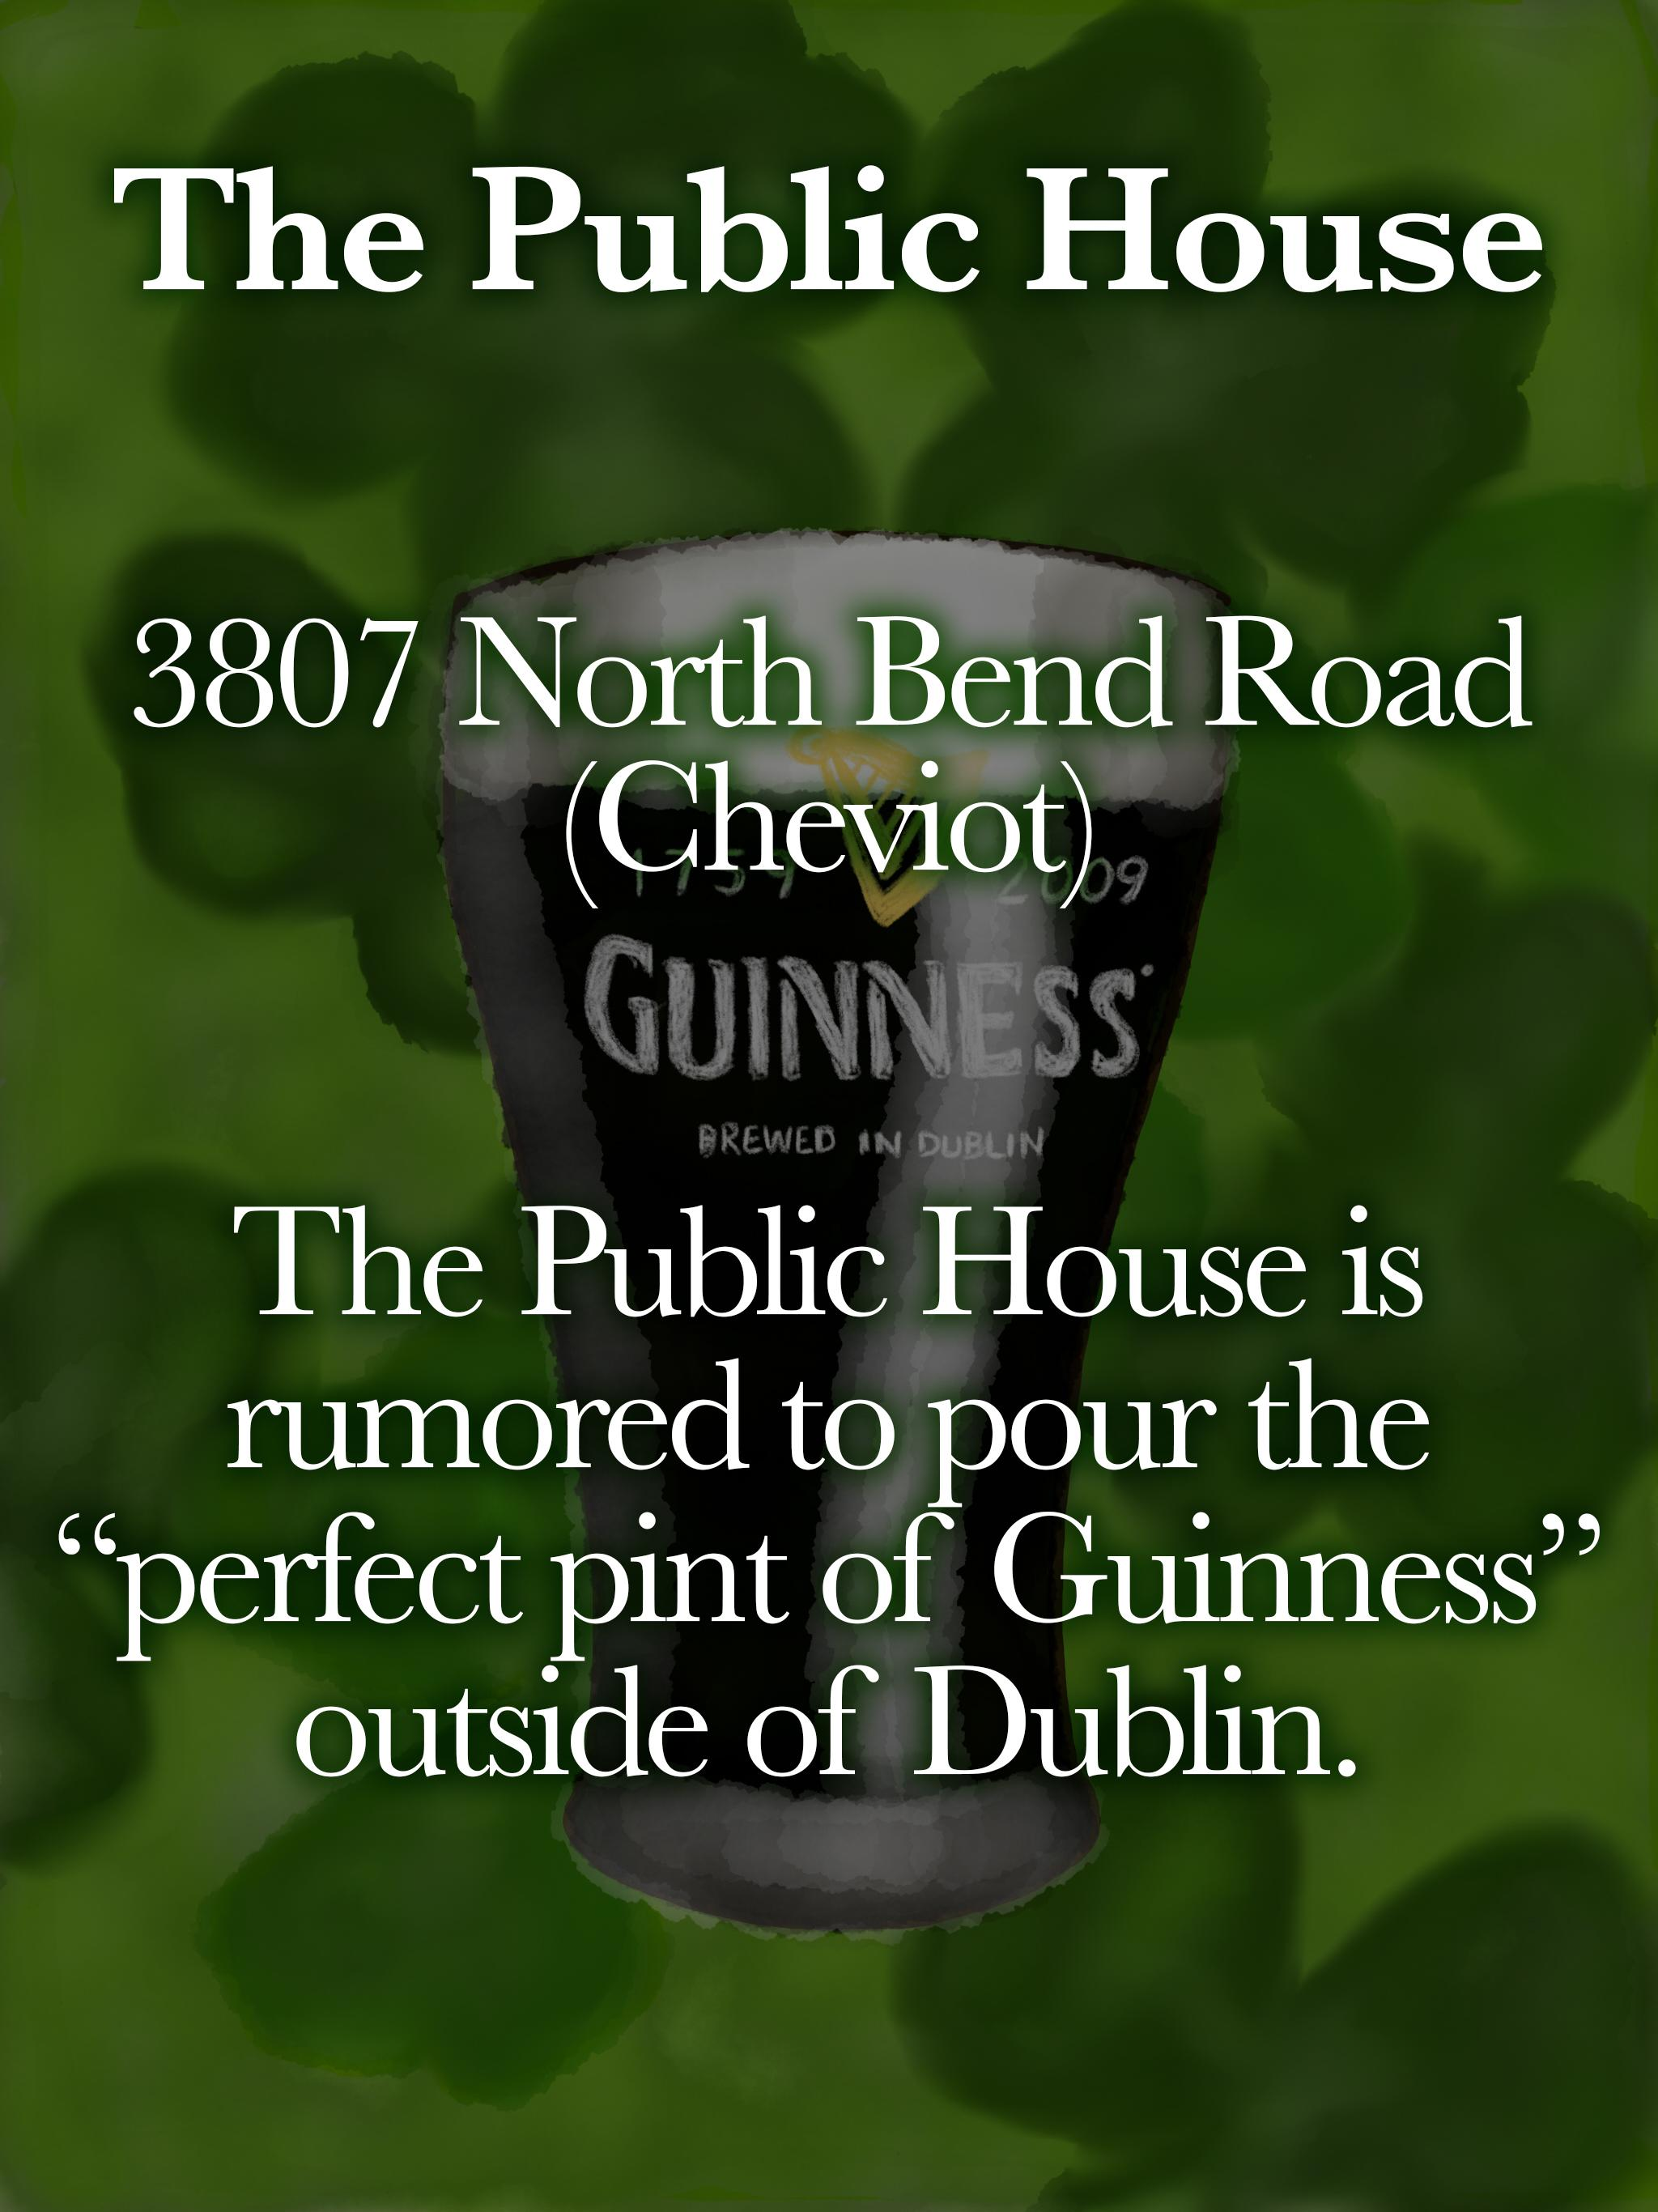 The Public House / ADDRESS: 3807 North Bend Road (Cheviot) // Published: 3.16.19